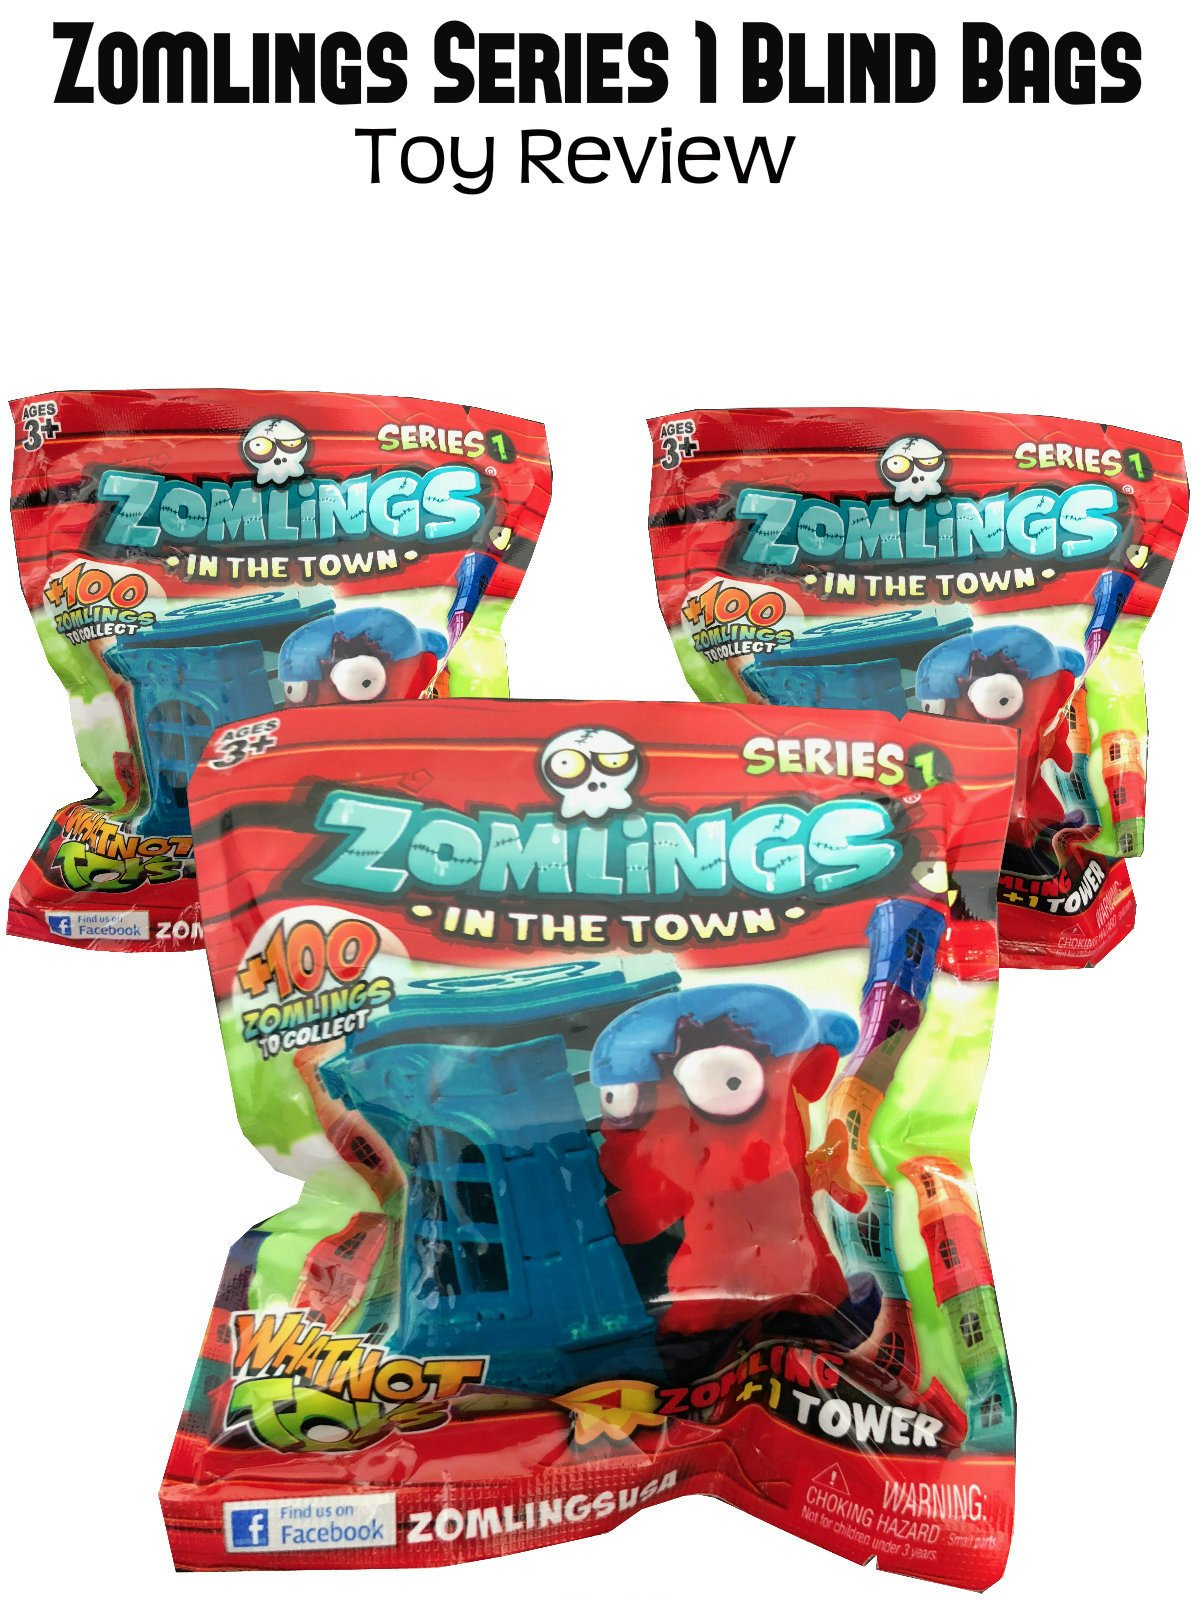 Review: Zomlings Series 1 Blind Bags Toy Review on Amazon Prime Video UK